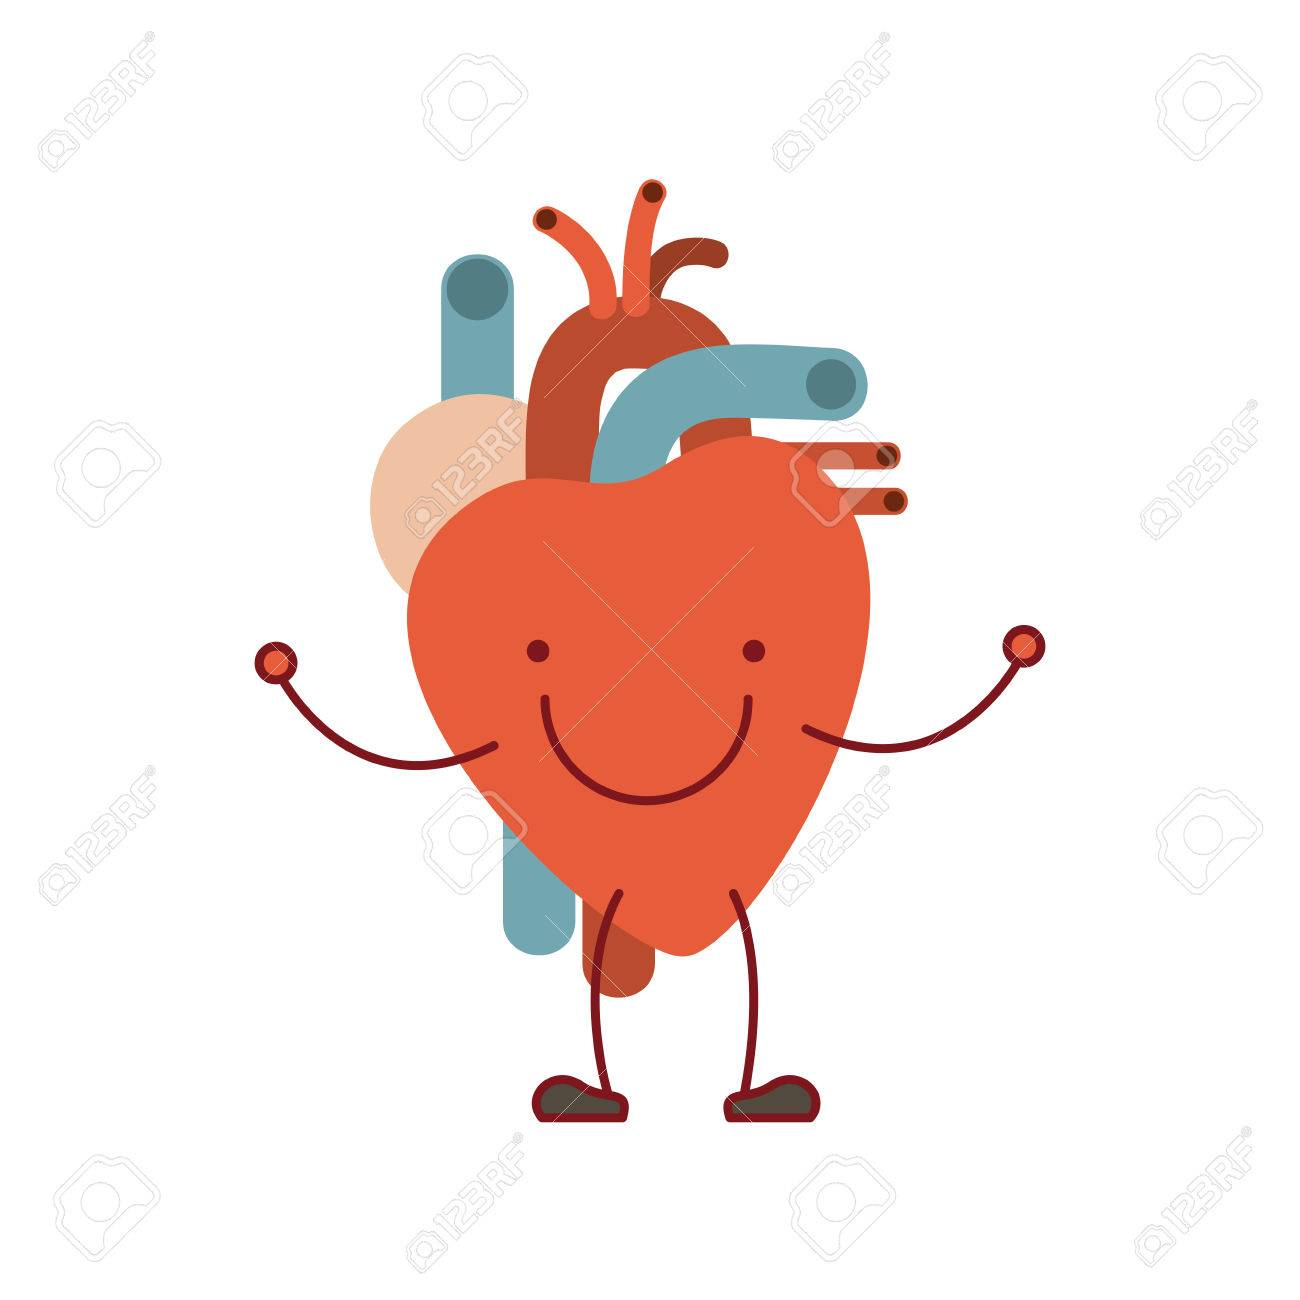 Colorful silhouette caricature with happy face circulatory system.